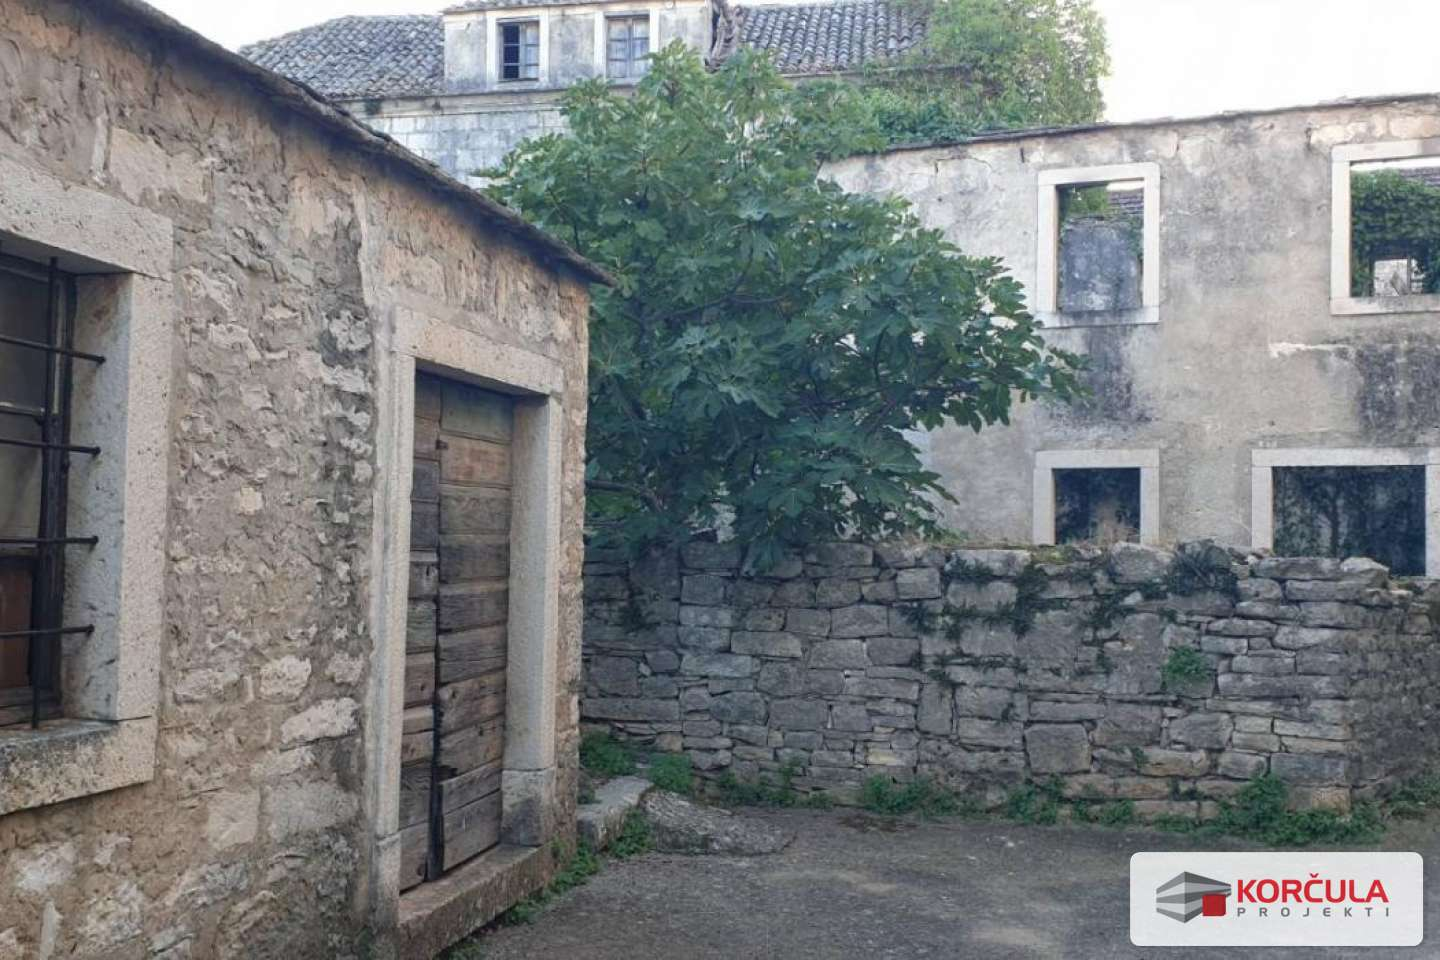 An old stone house complex in a fairytale village - a renovation project